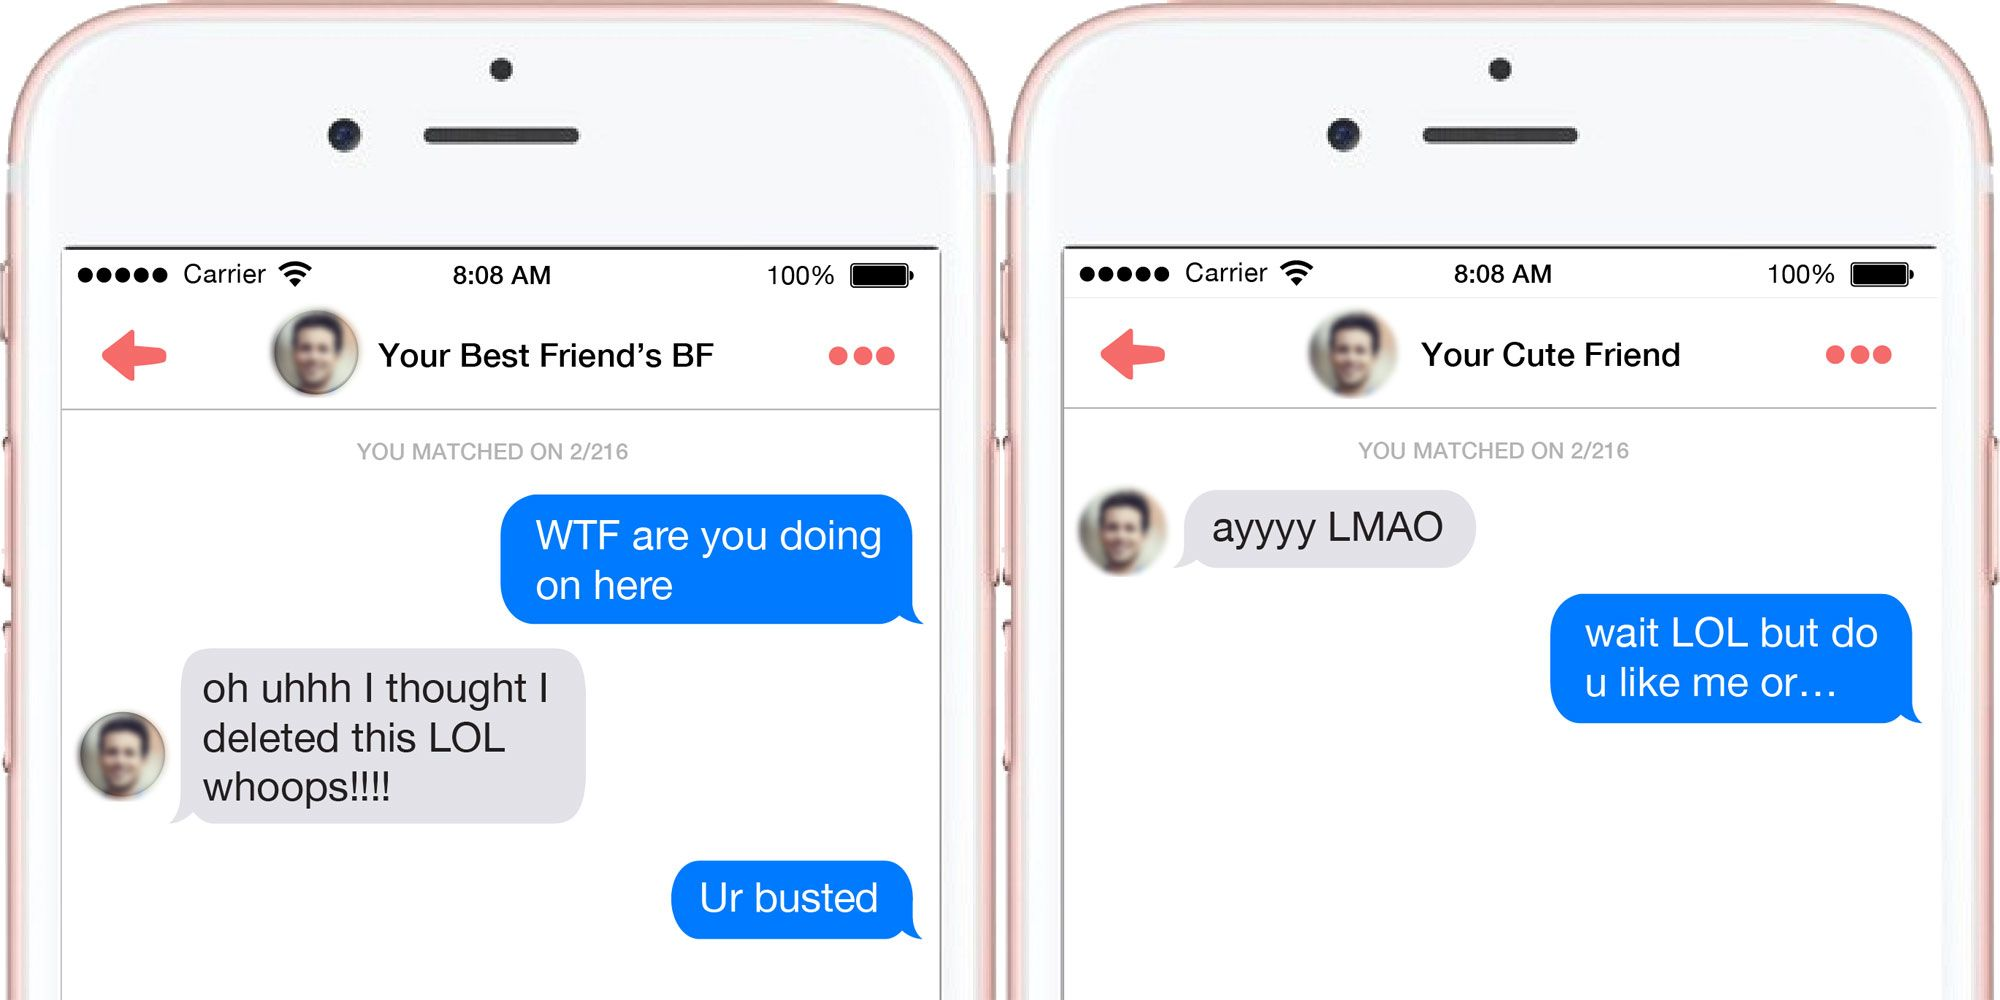 Your Complete Guide To Tinder Etiquette